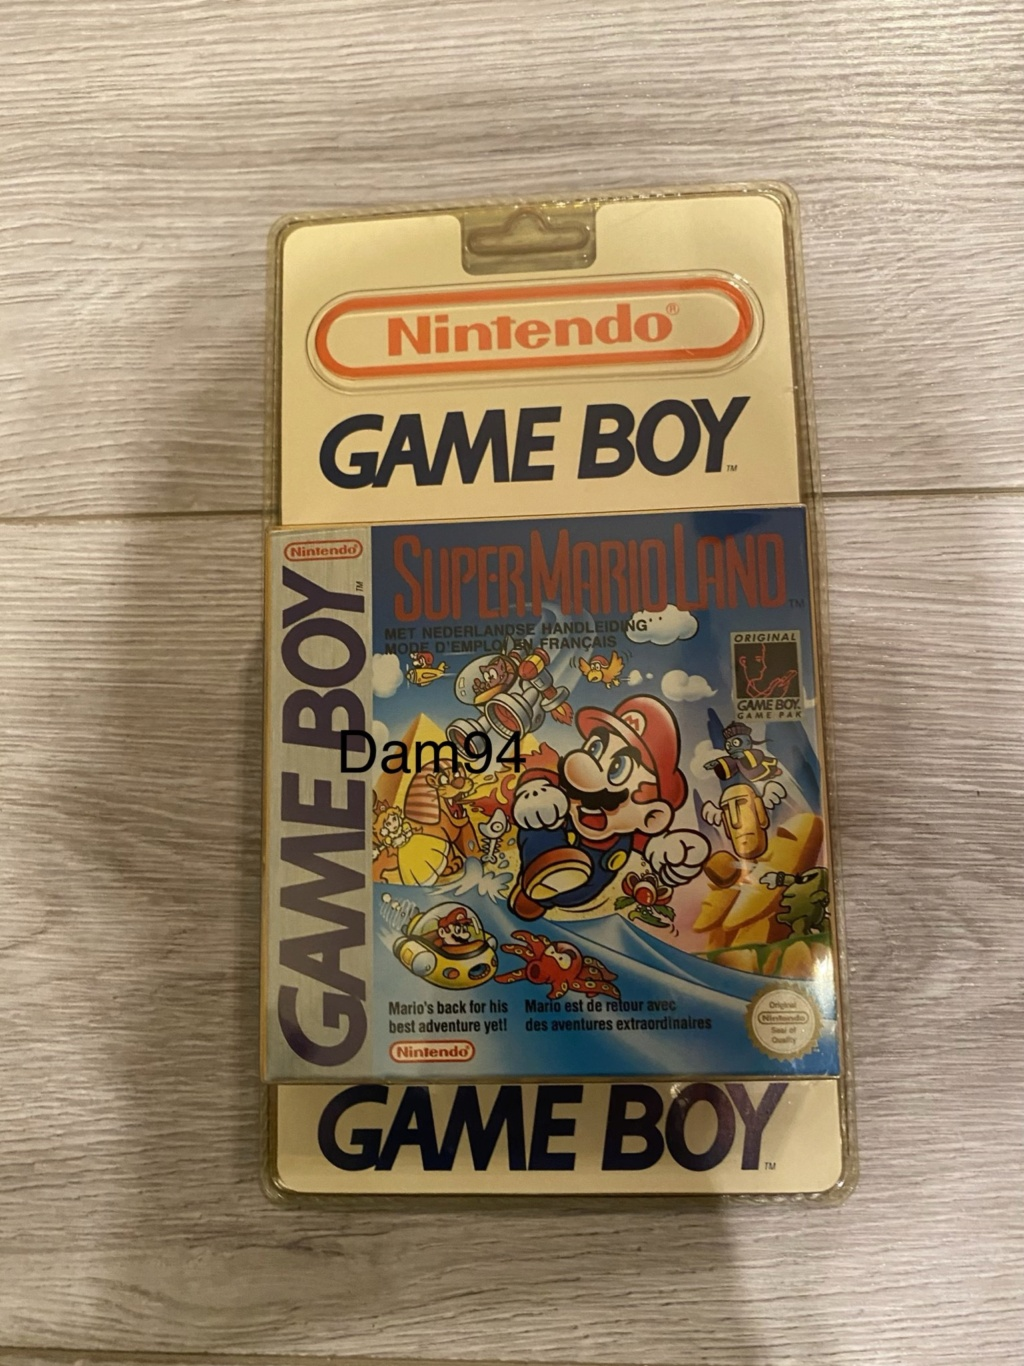 Collection Blisters Rigides Game Boy 9d02e410